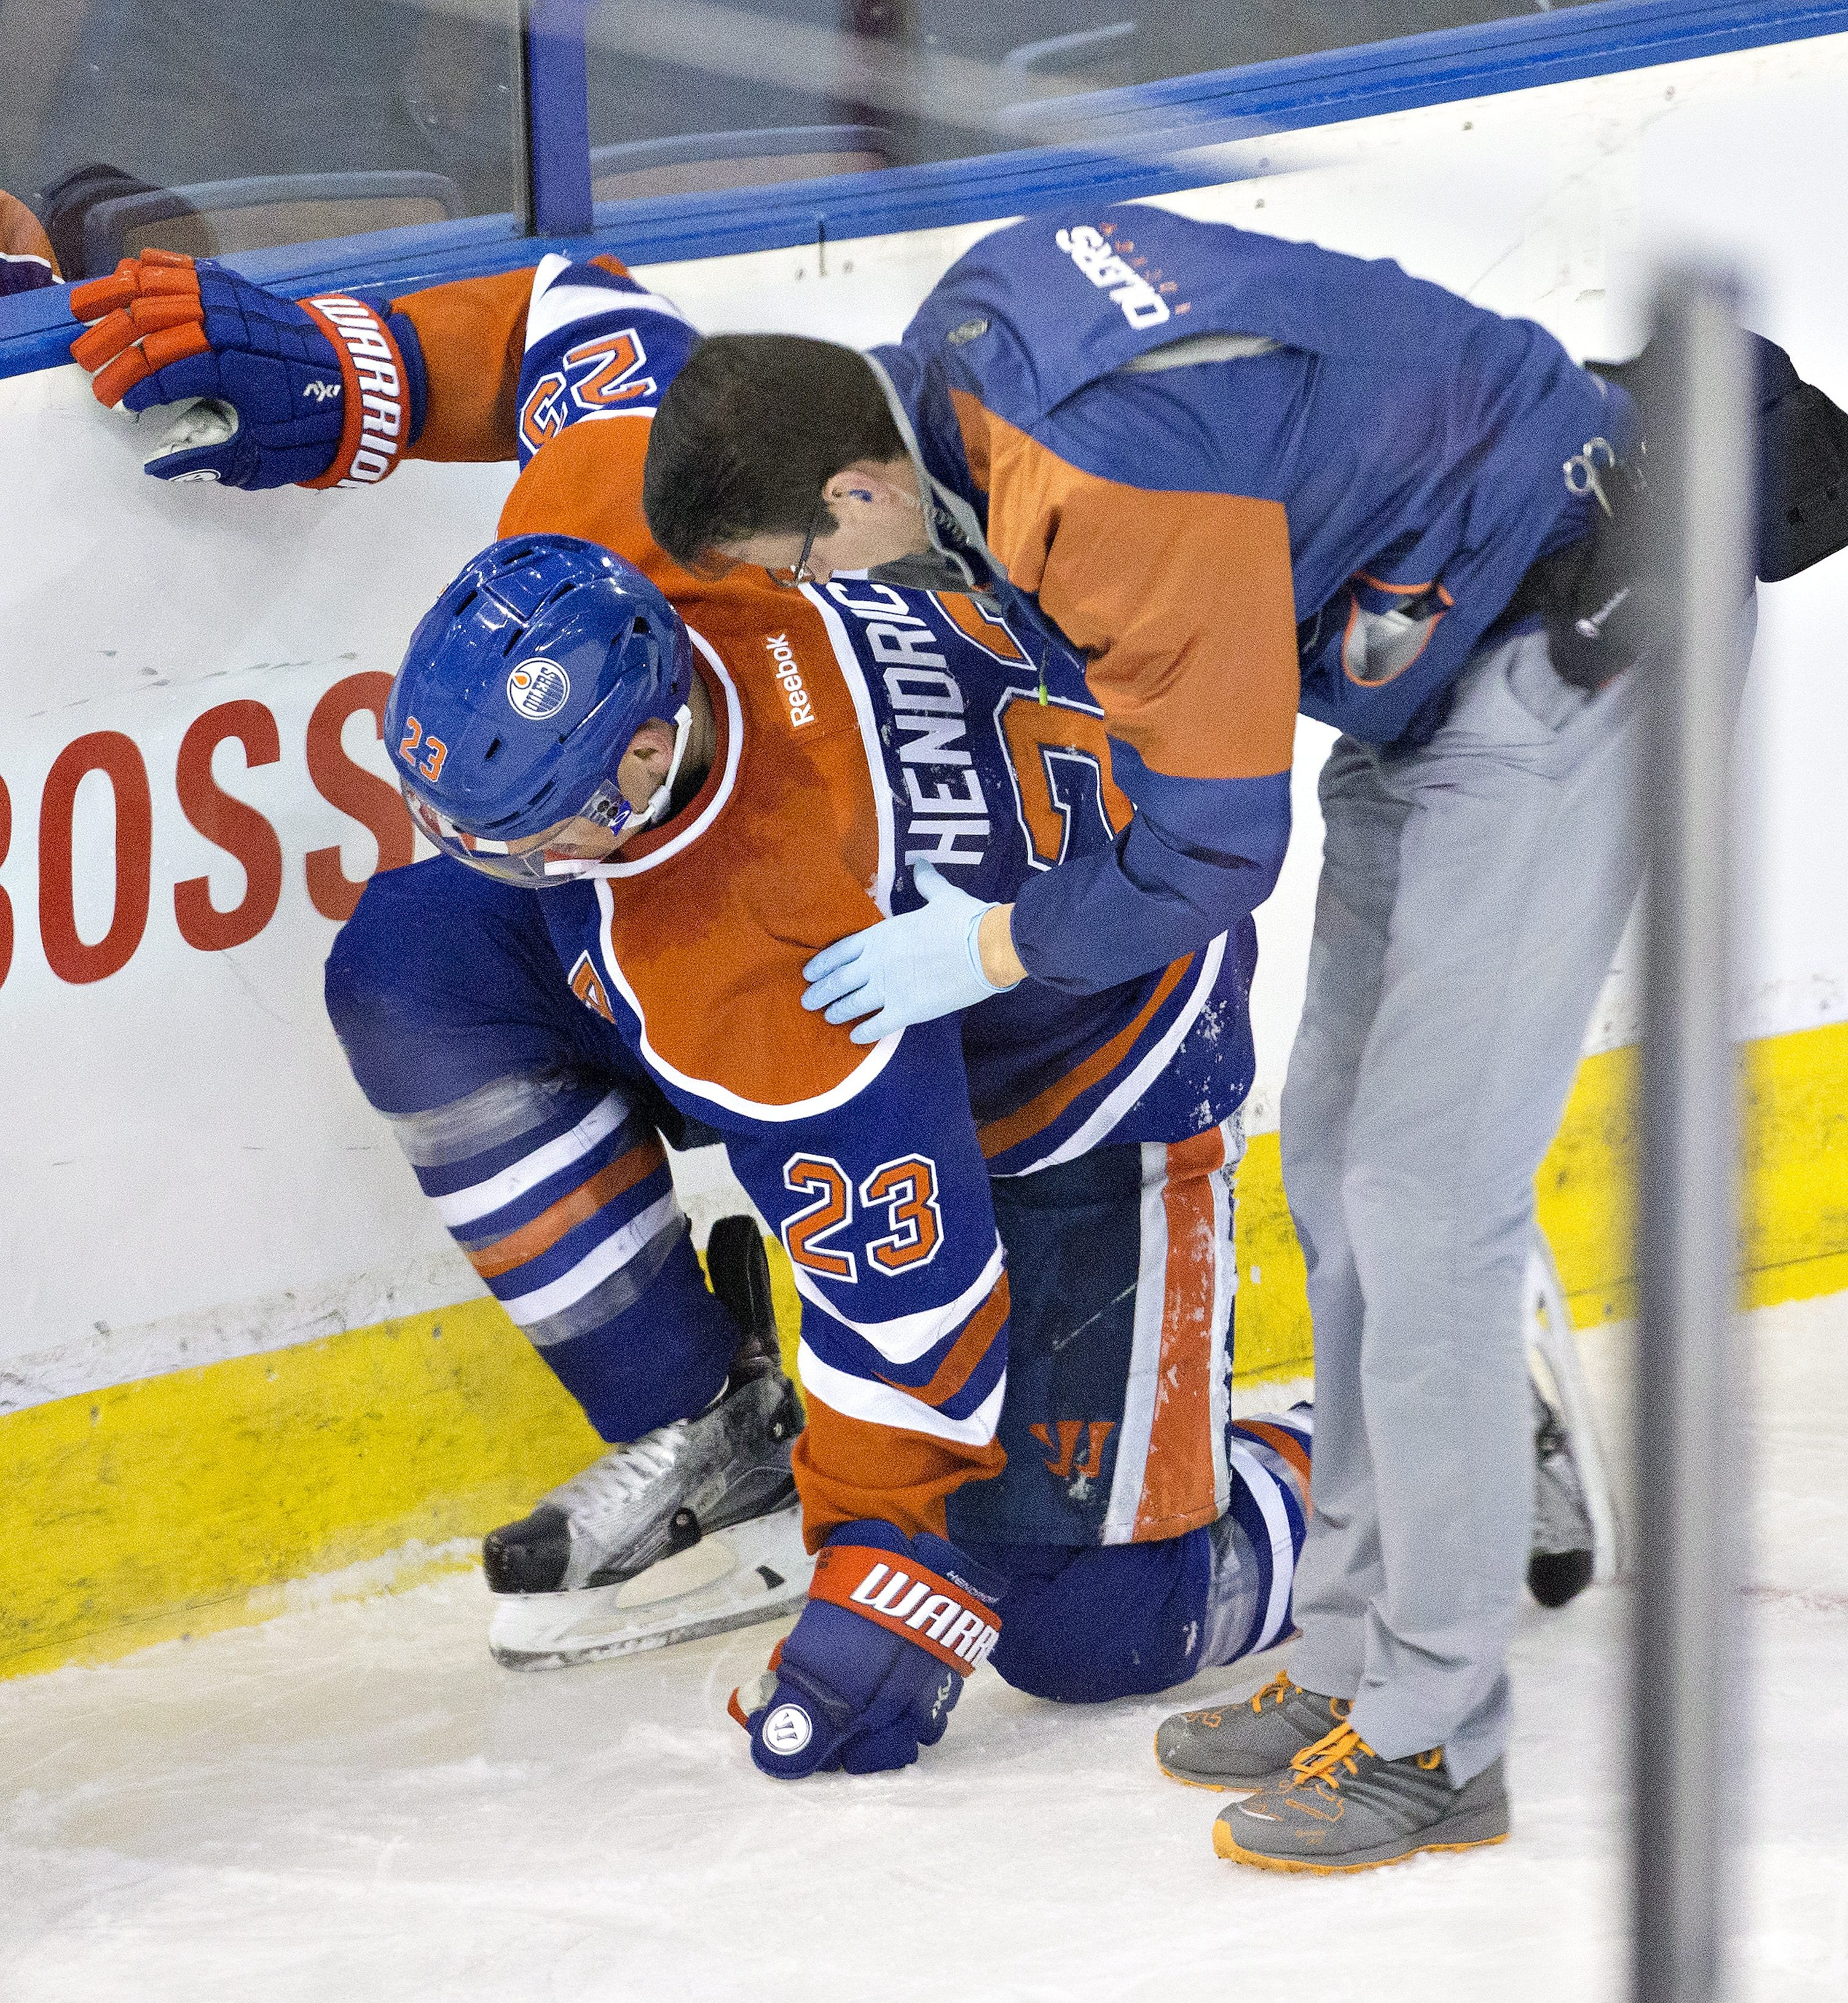 A trainer attends to Edmonton Oilers' Matt Hendricks (23) ad he tries to get up after a check from the San Jose Sharks during third period NHL action in Edmonton, Alberta, Tuesday March 8, 2016. (Jason Franson/The Canadian Press via AP)